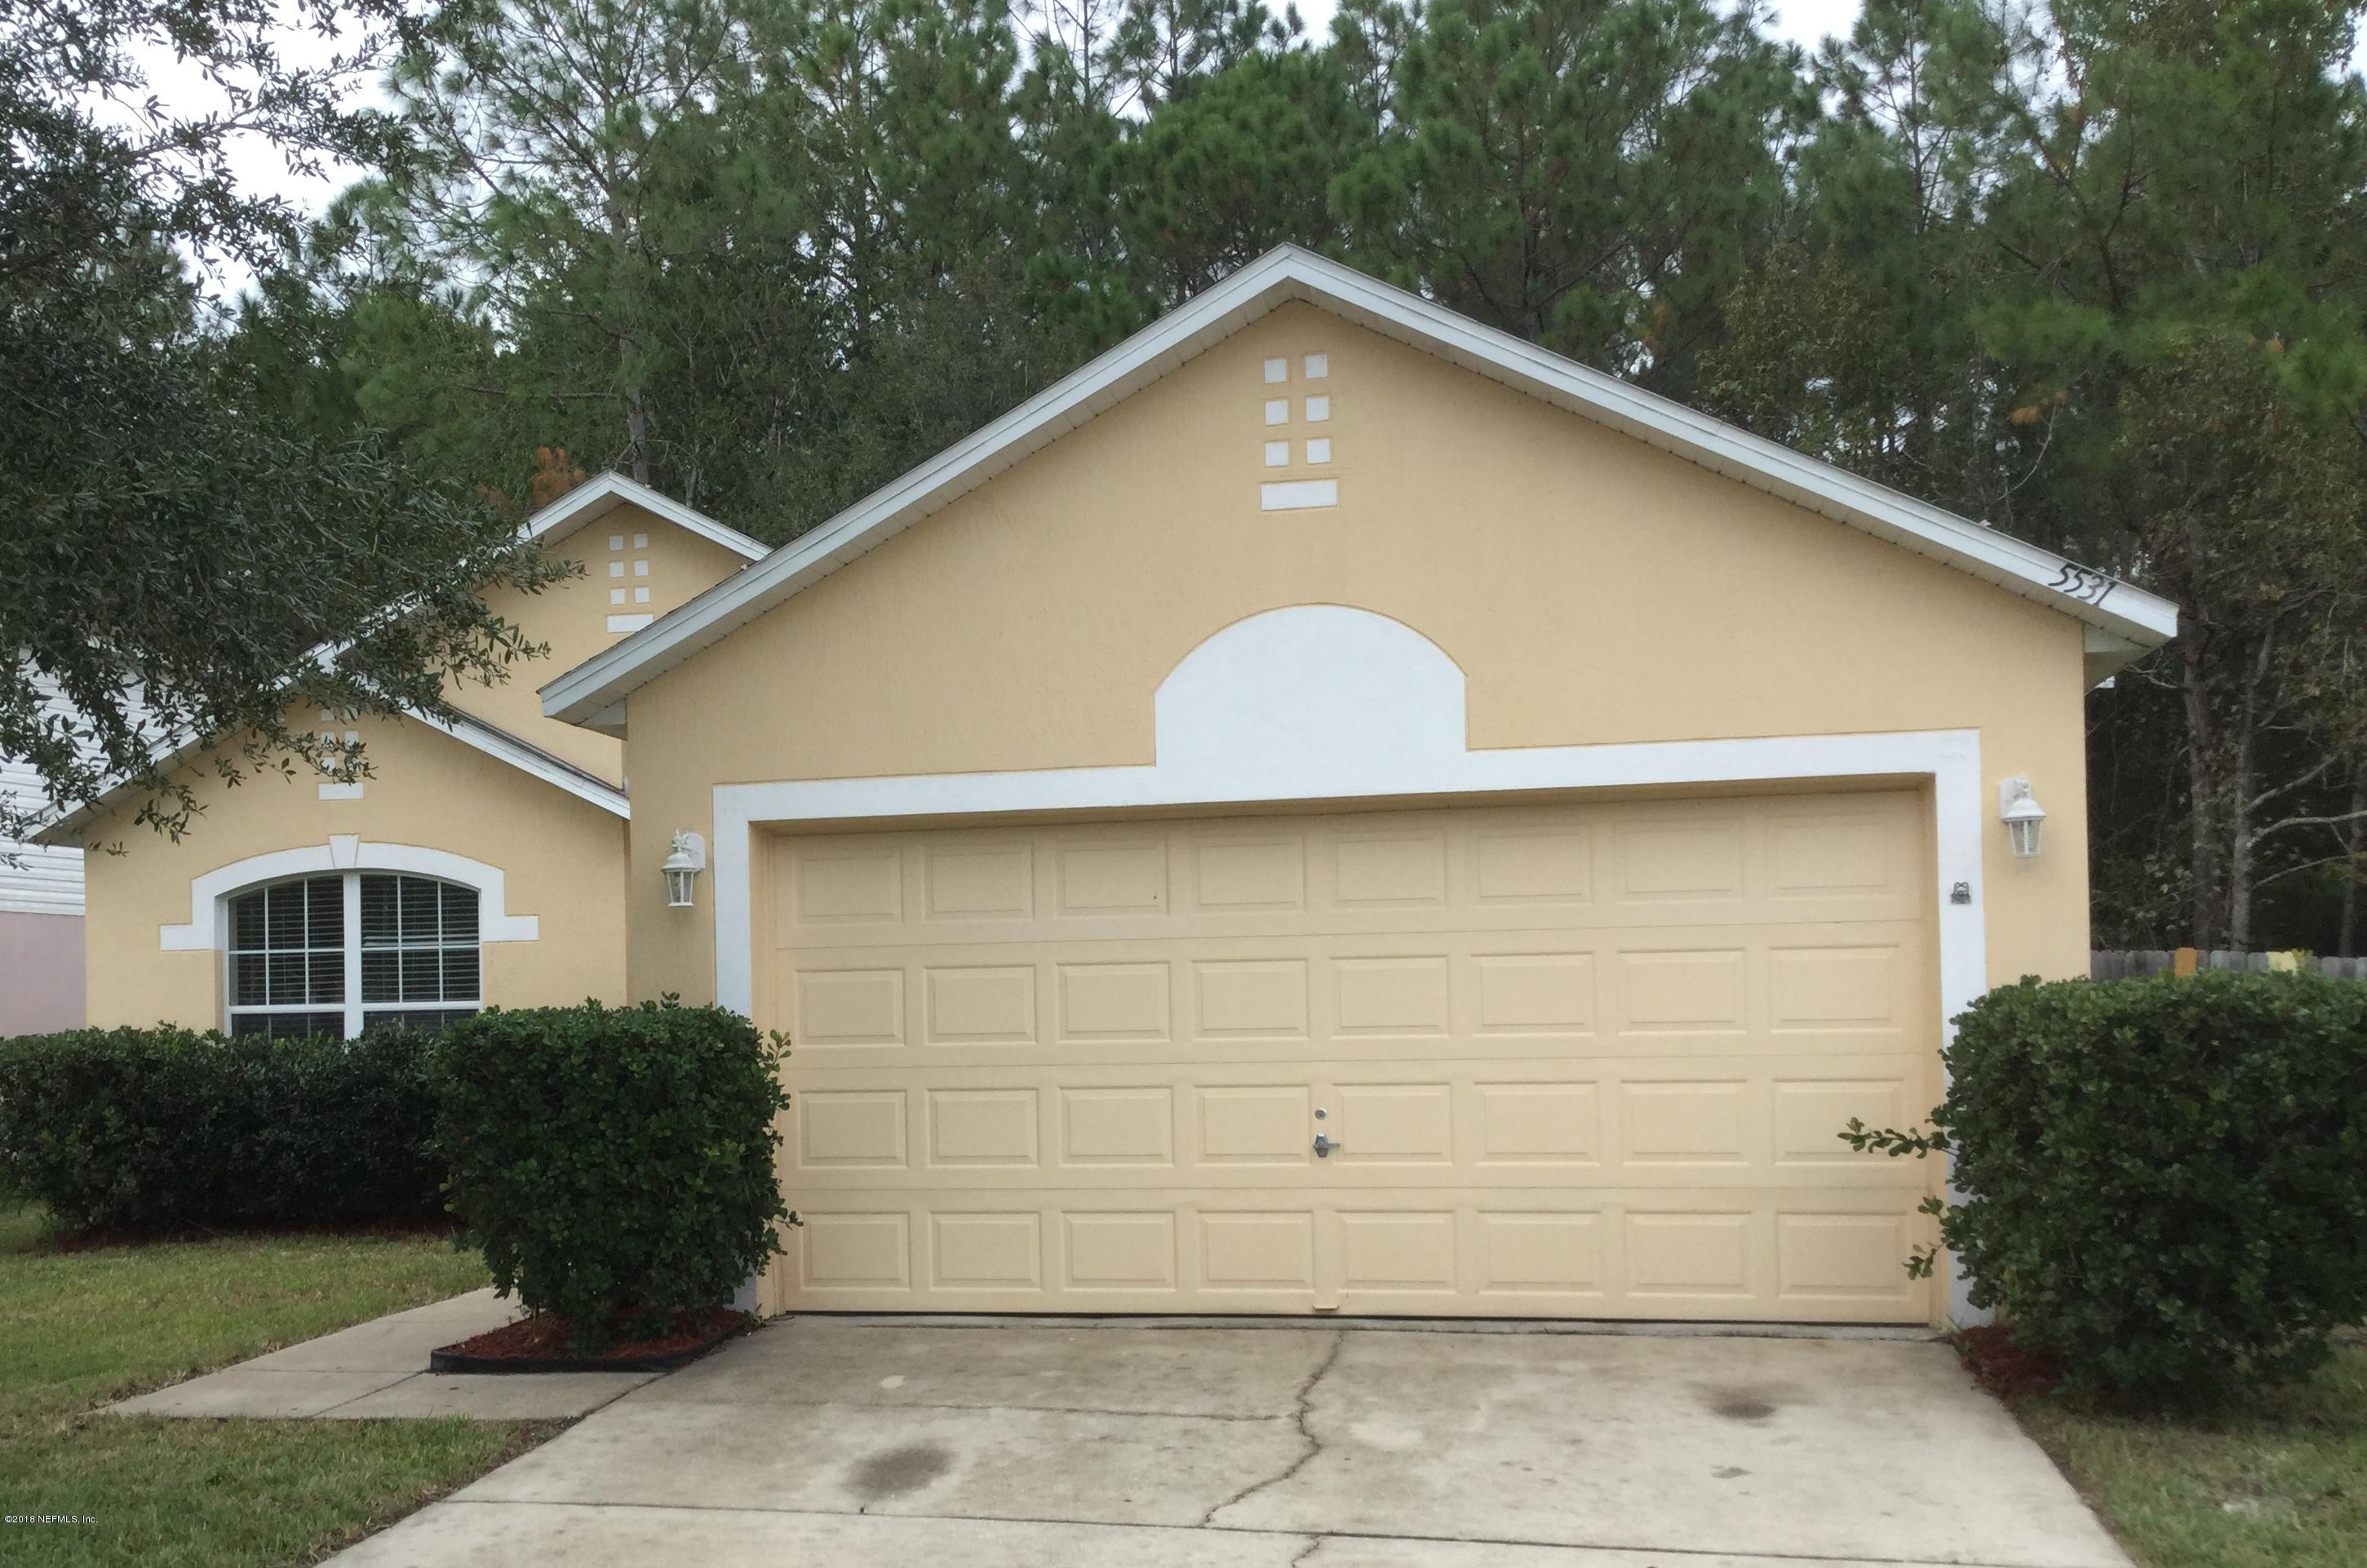 5531 SHADY PINE, JACKSONVILLE, FLORIDA 32244, 3 Bedrooms Bedrooms, ,2 BathroomsBathrooms,Residential - single family,For sale,SHADY PINE,969683